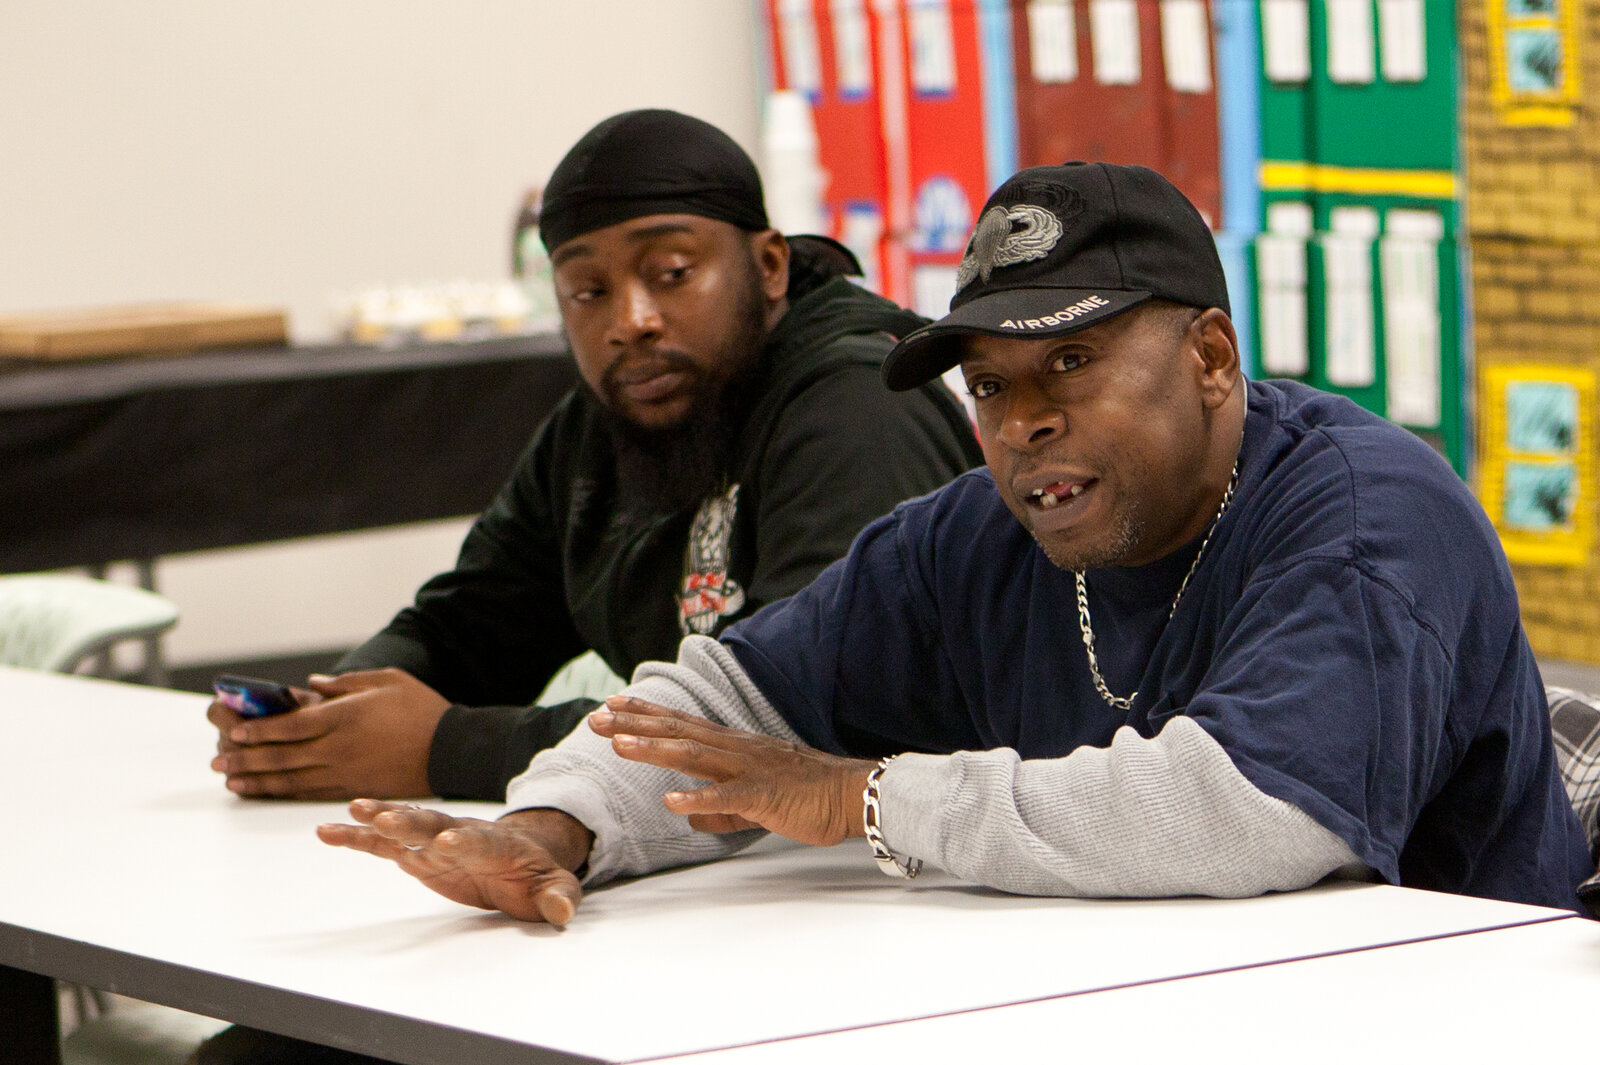 Harrelle Felipa (right) speaks during the Responsible Fathers meeting at the Center for Urban Families in Baltimore. His child support debt has accrued to $20,000 after he quit a job to be a stay-at-home dad.